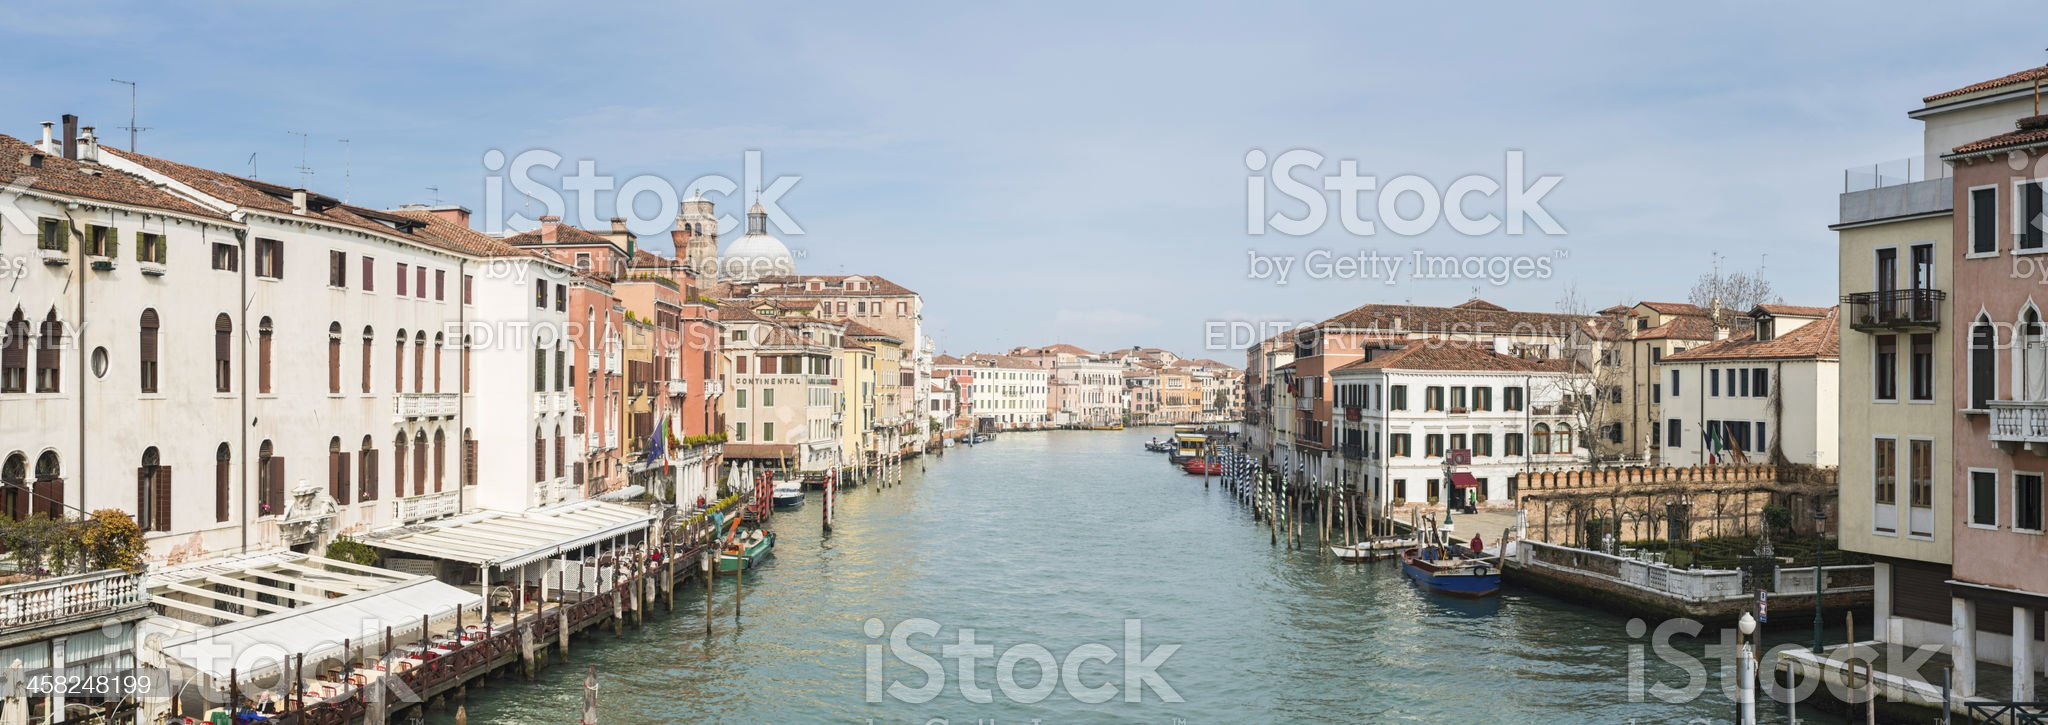 Venice Grand Canal hotels and restaurants panorama Italy royalty-free stock photo